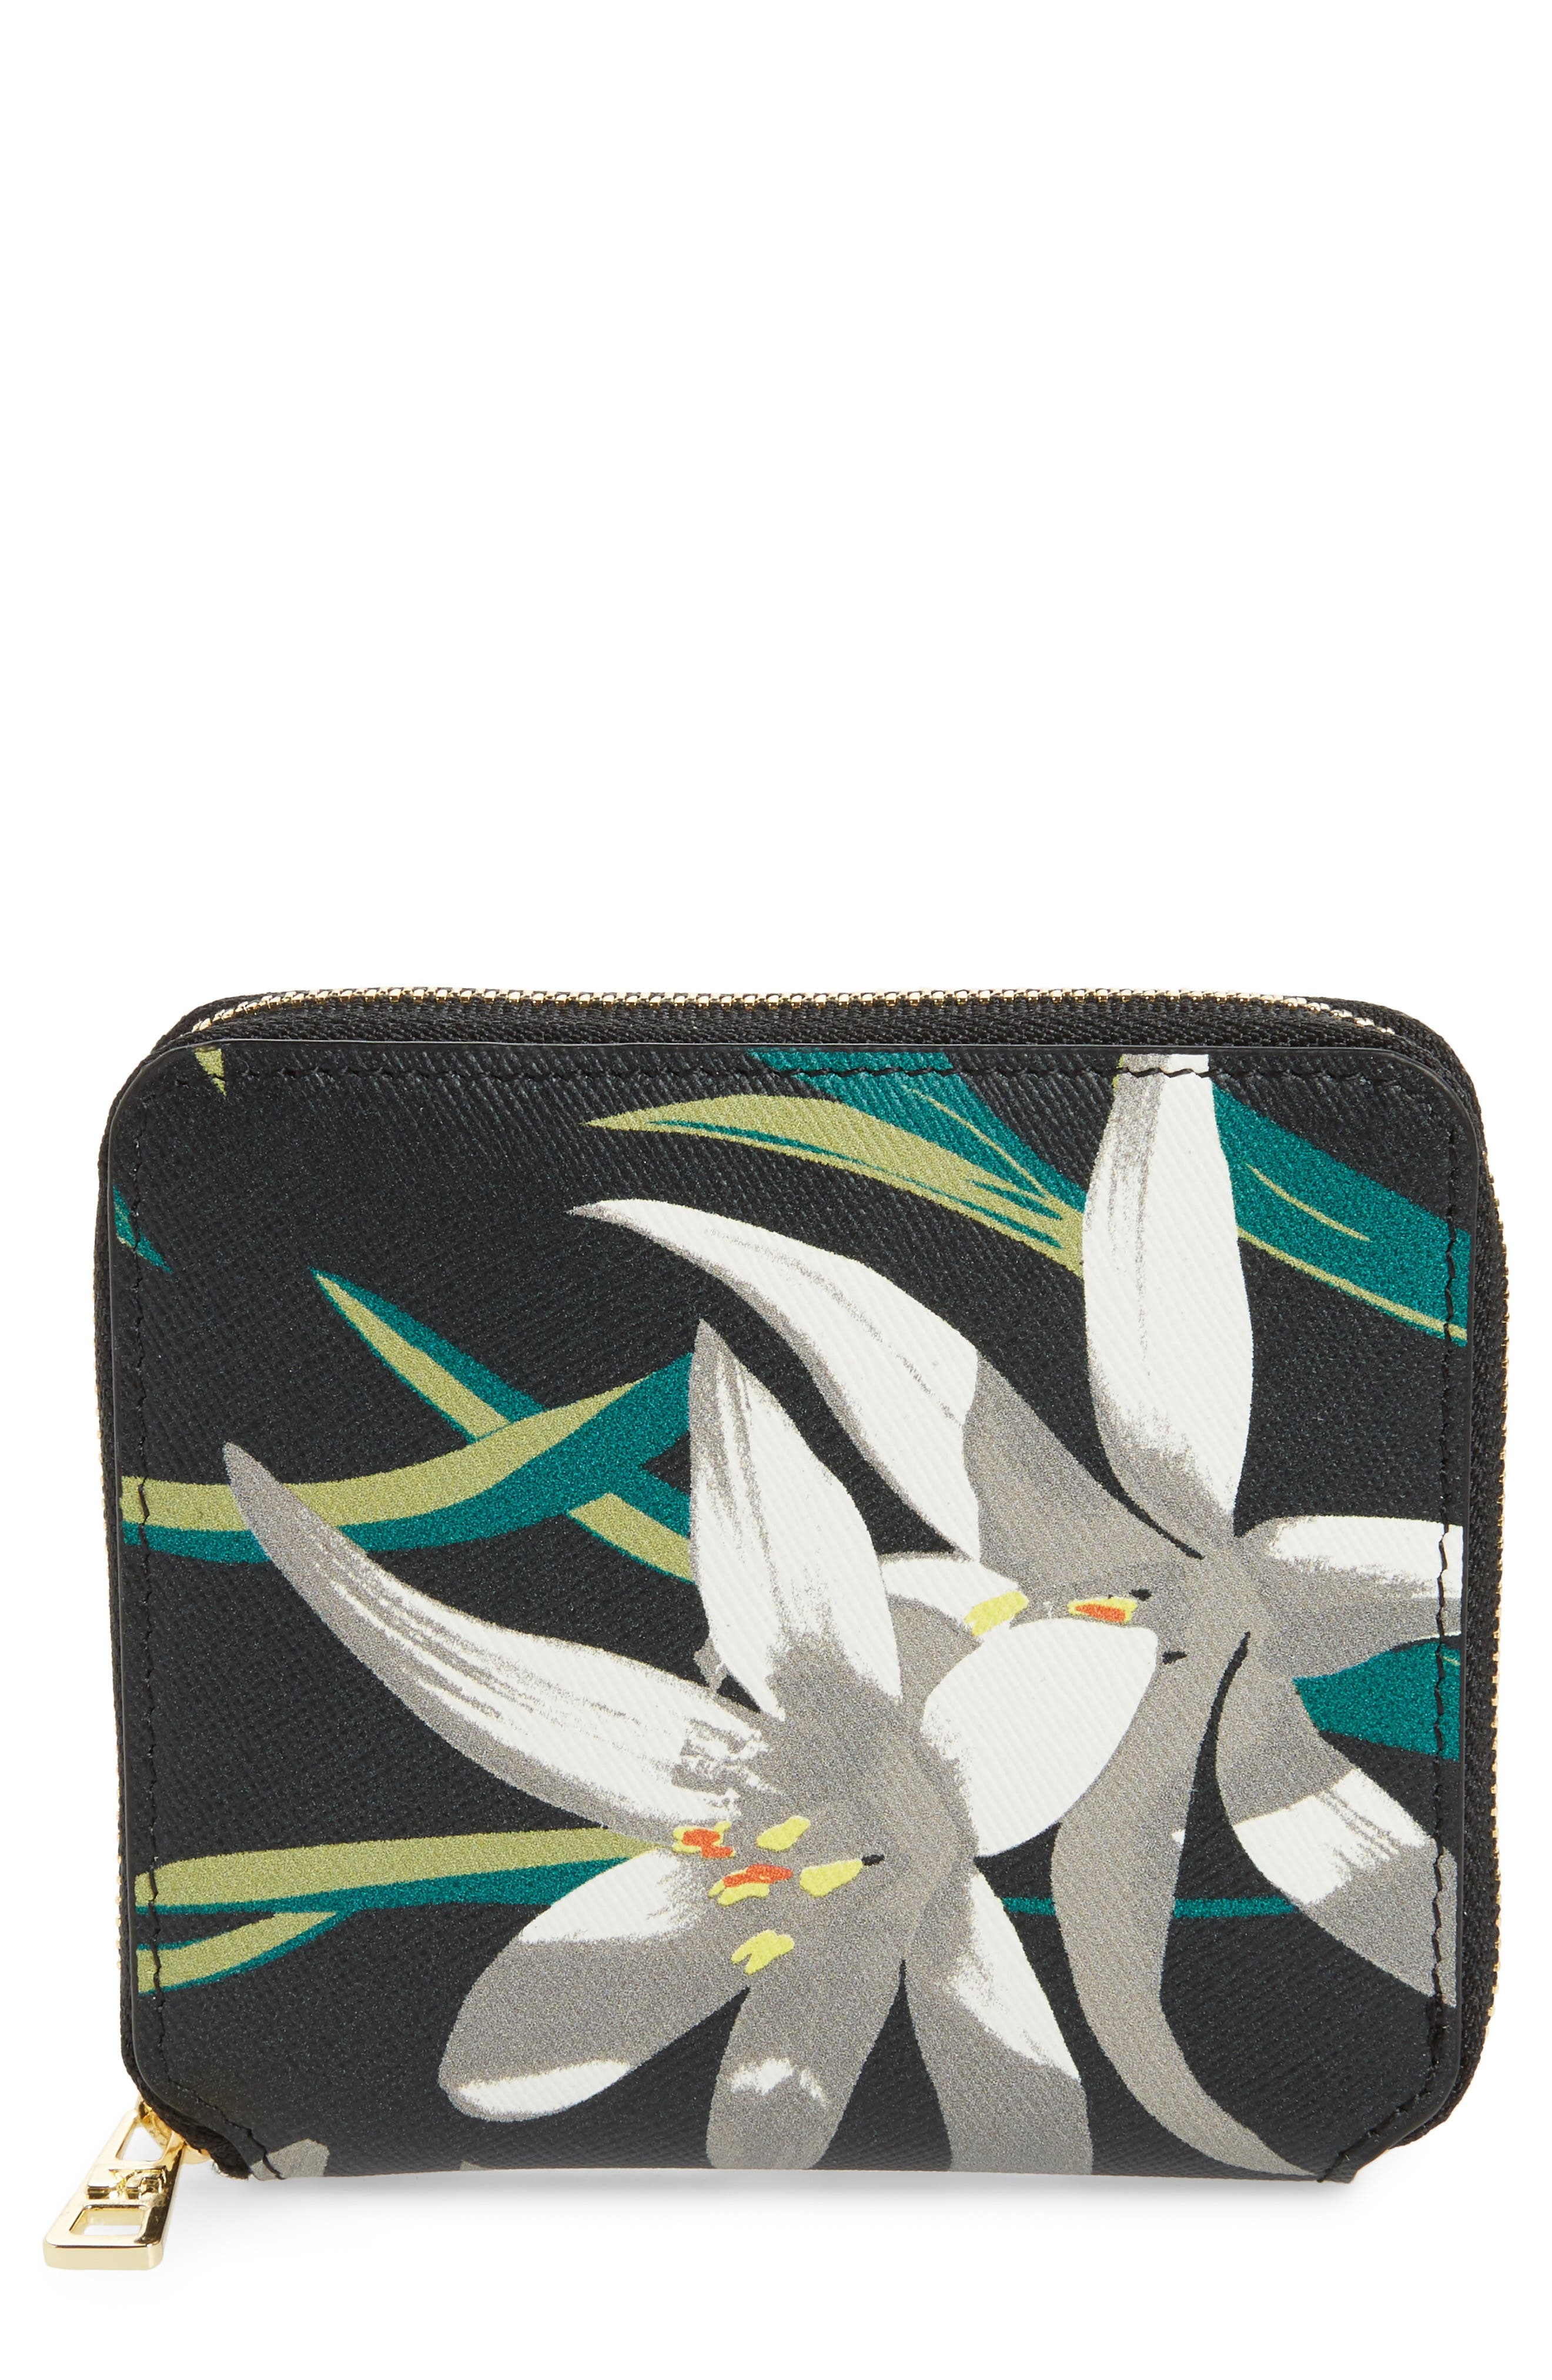 Small Leather Zip Wallet,                         Main,                         color, Harlow Black